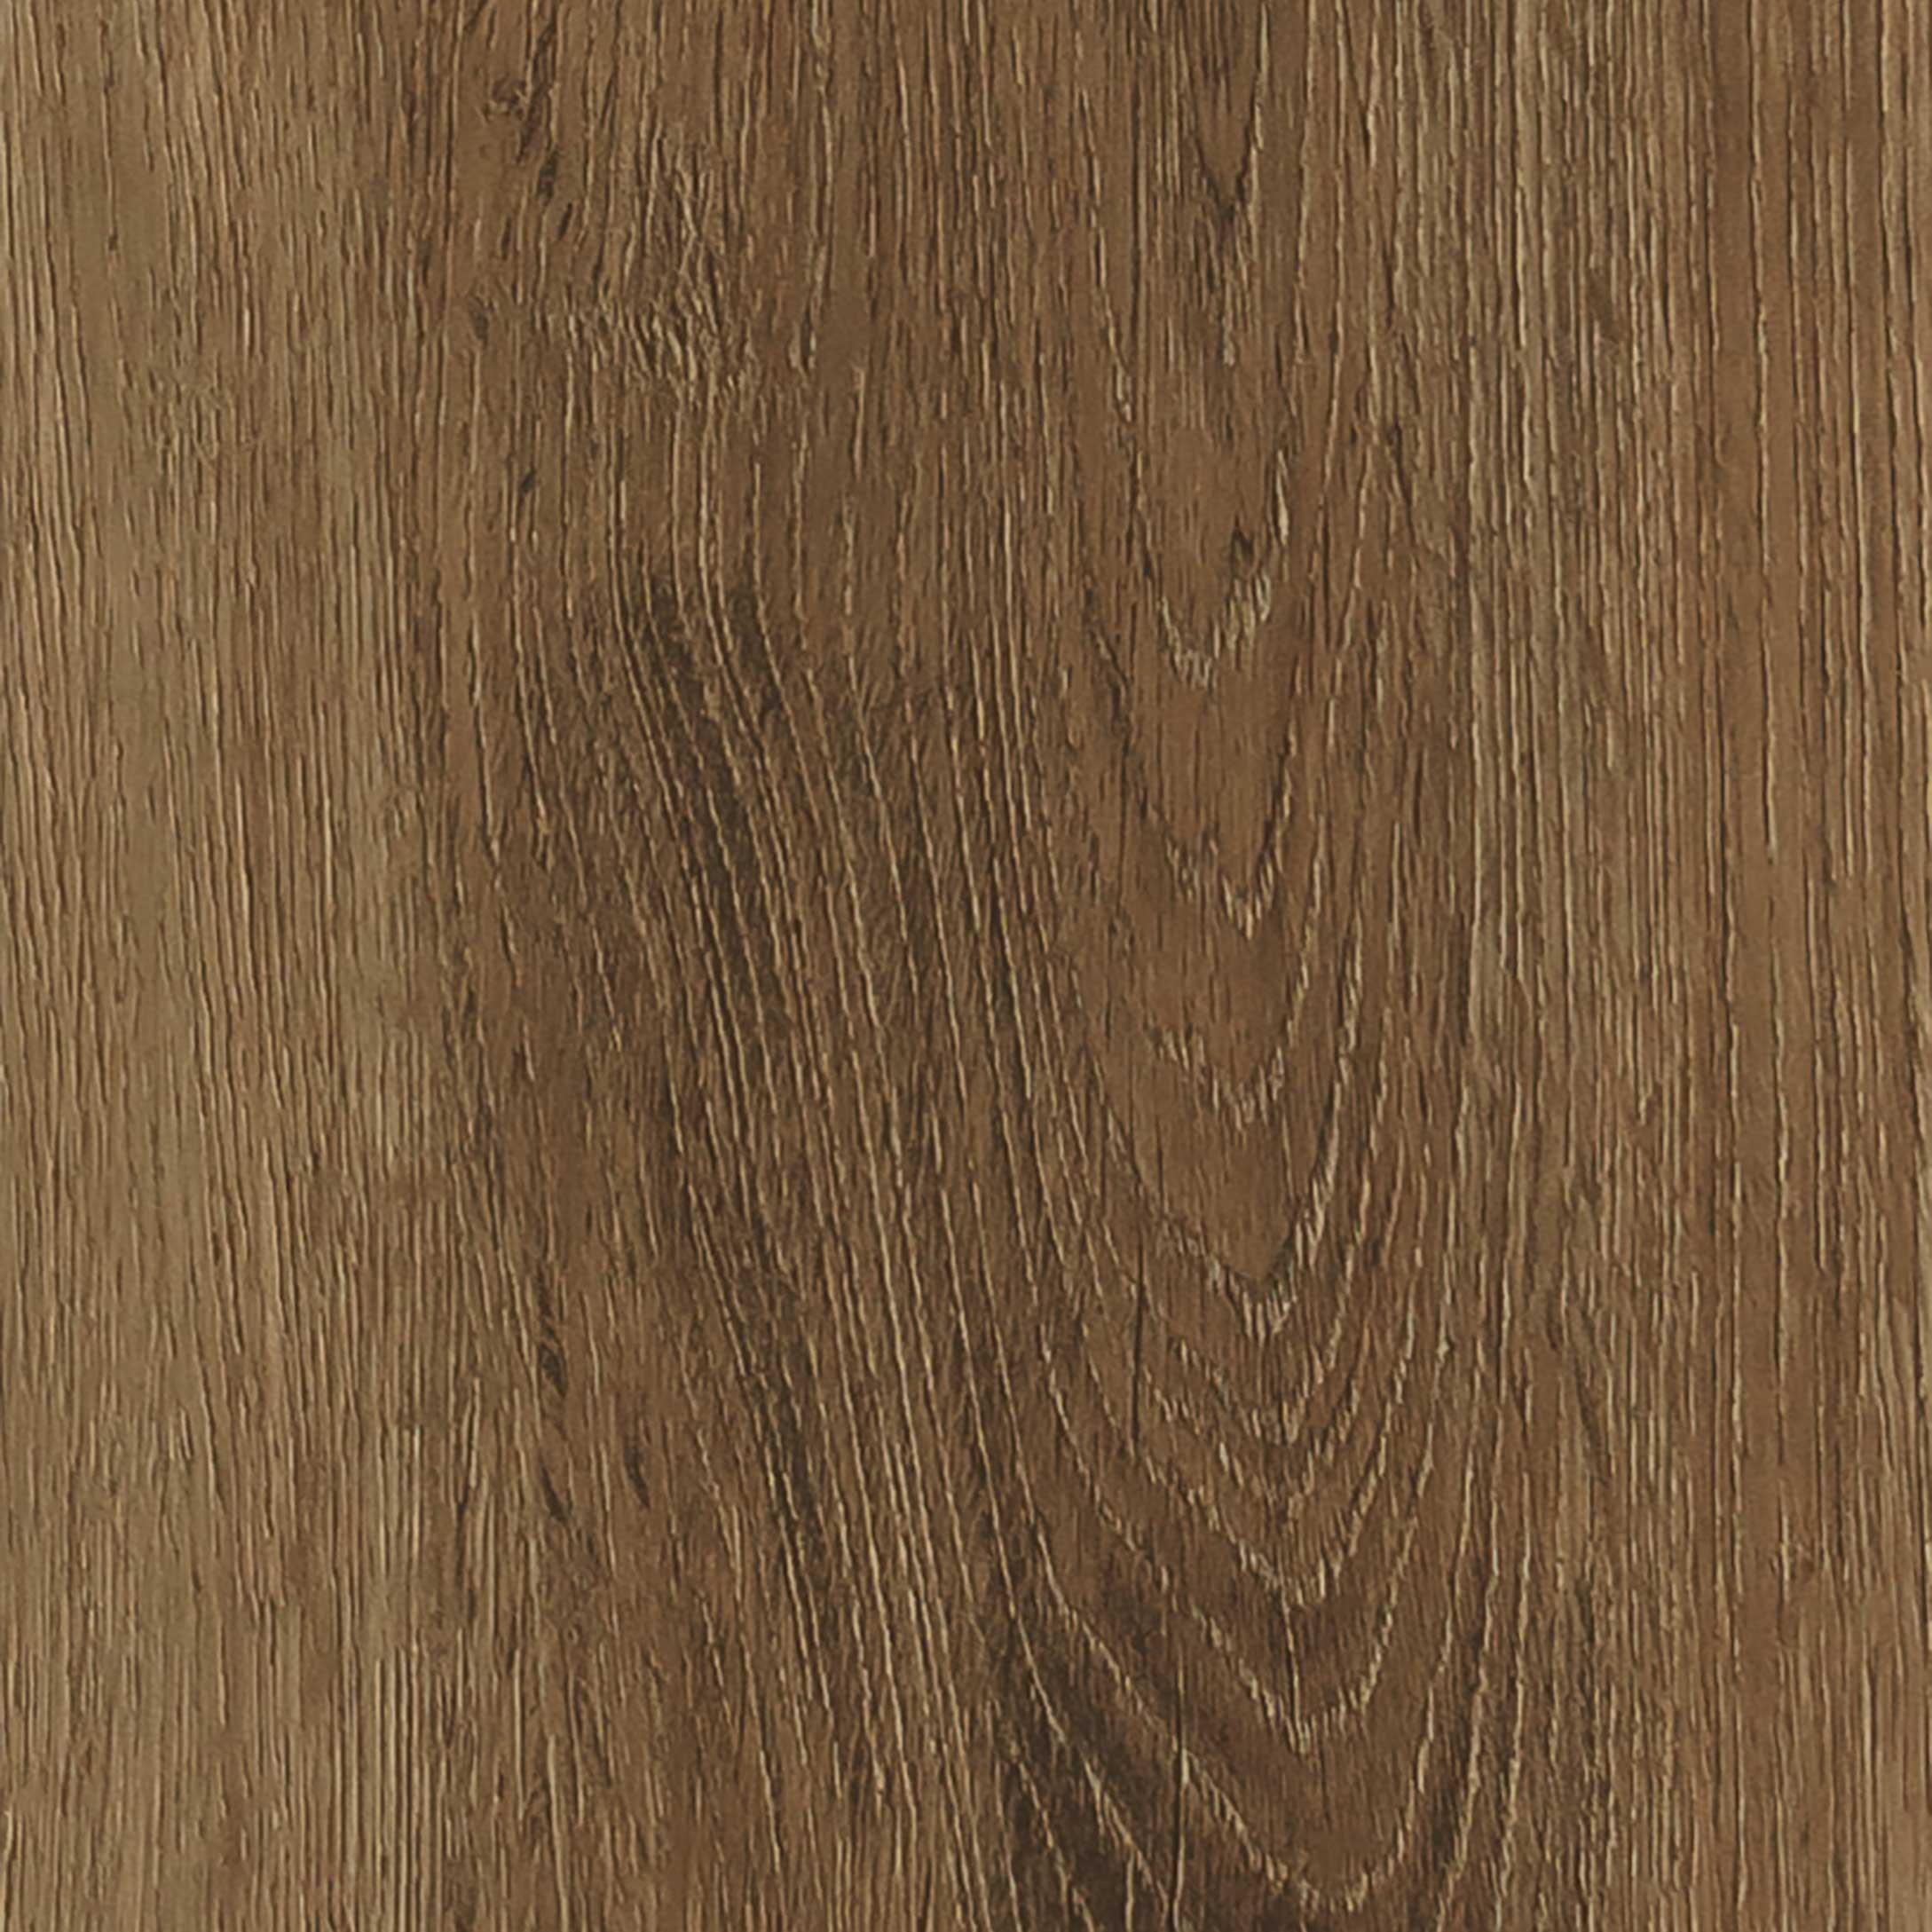 French Oak, smoked 2835